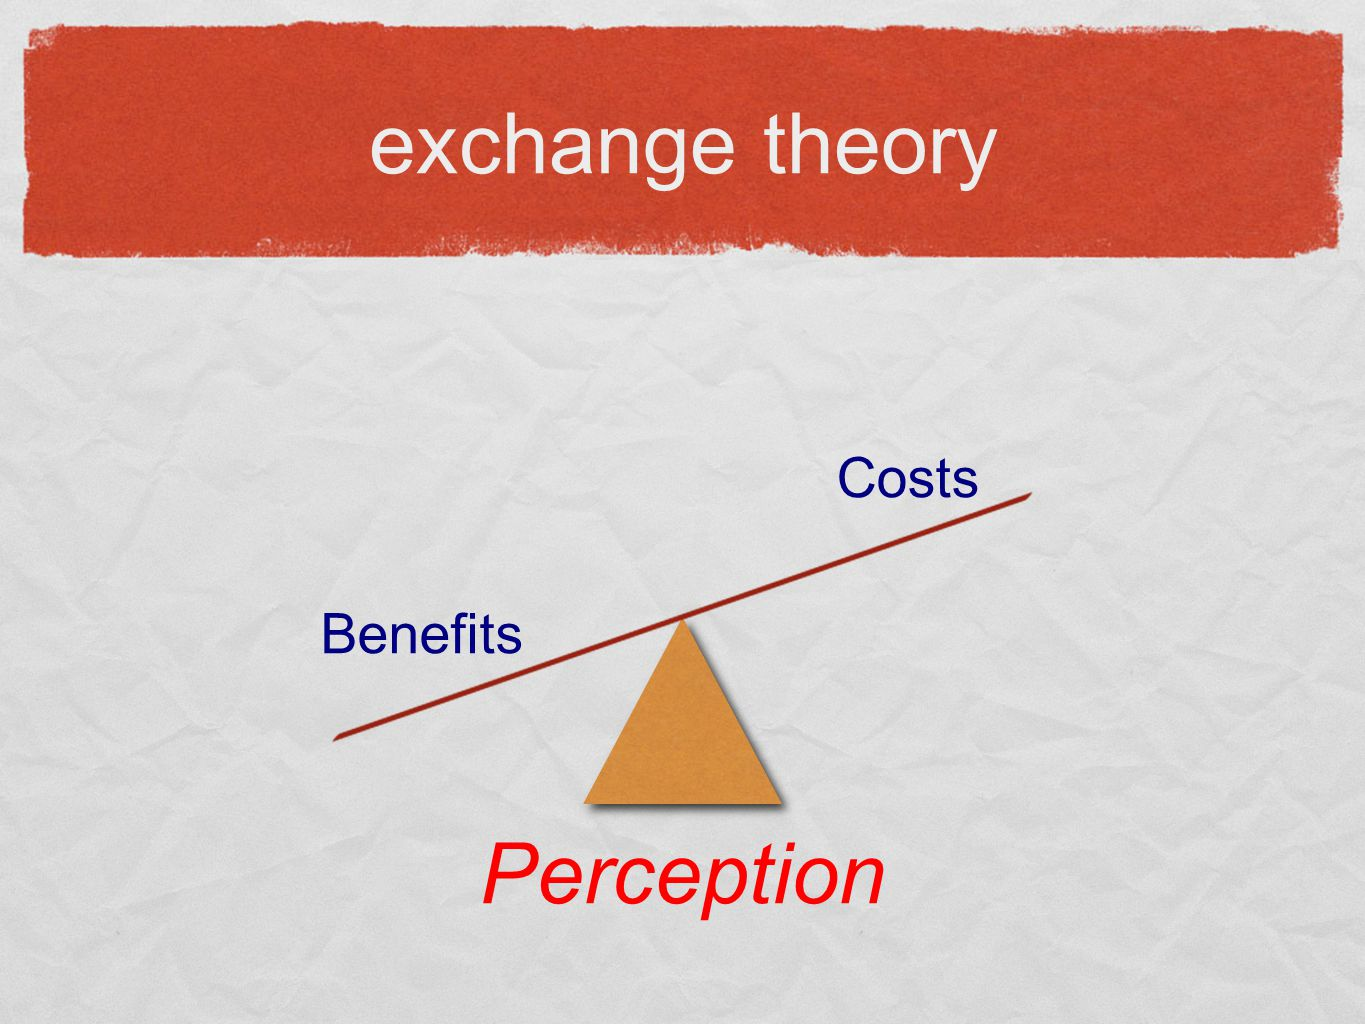 exchange theory Benefits Costs Perception